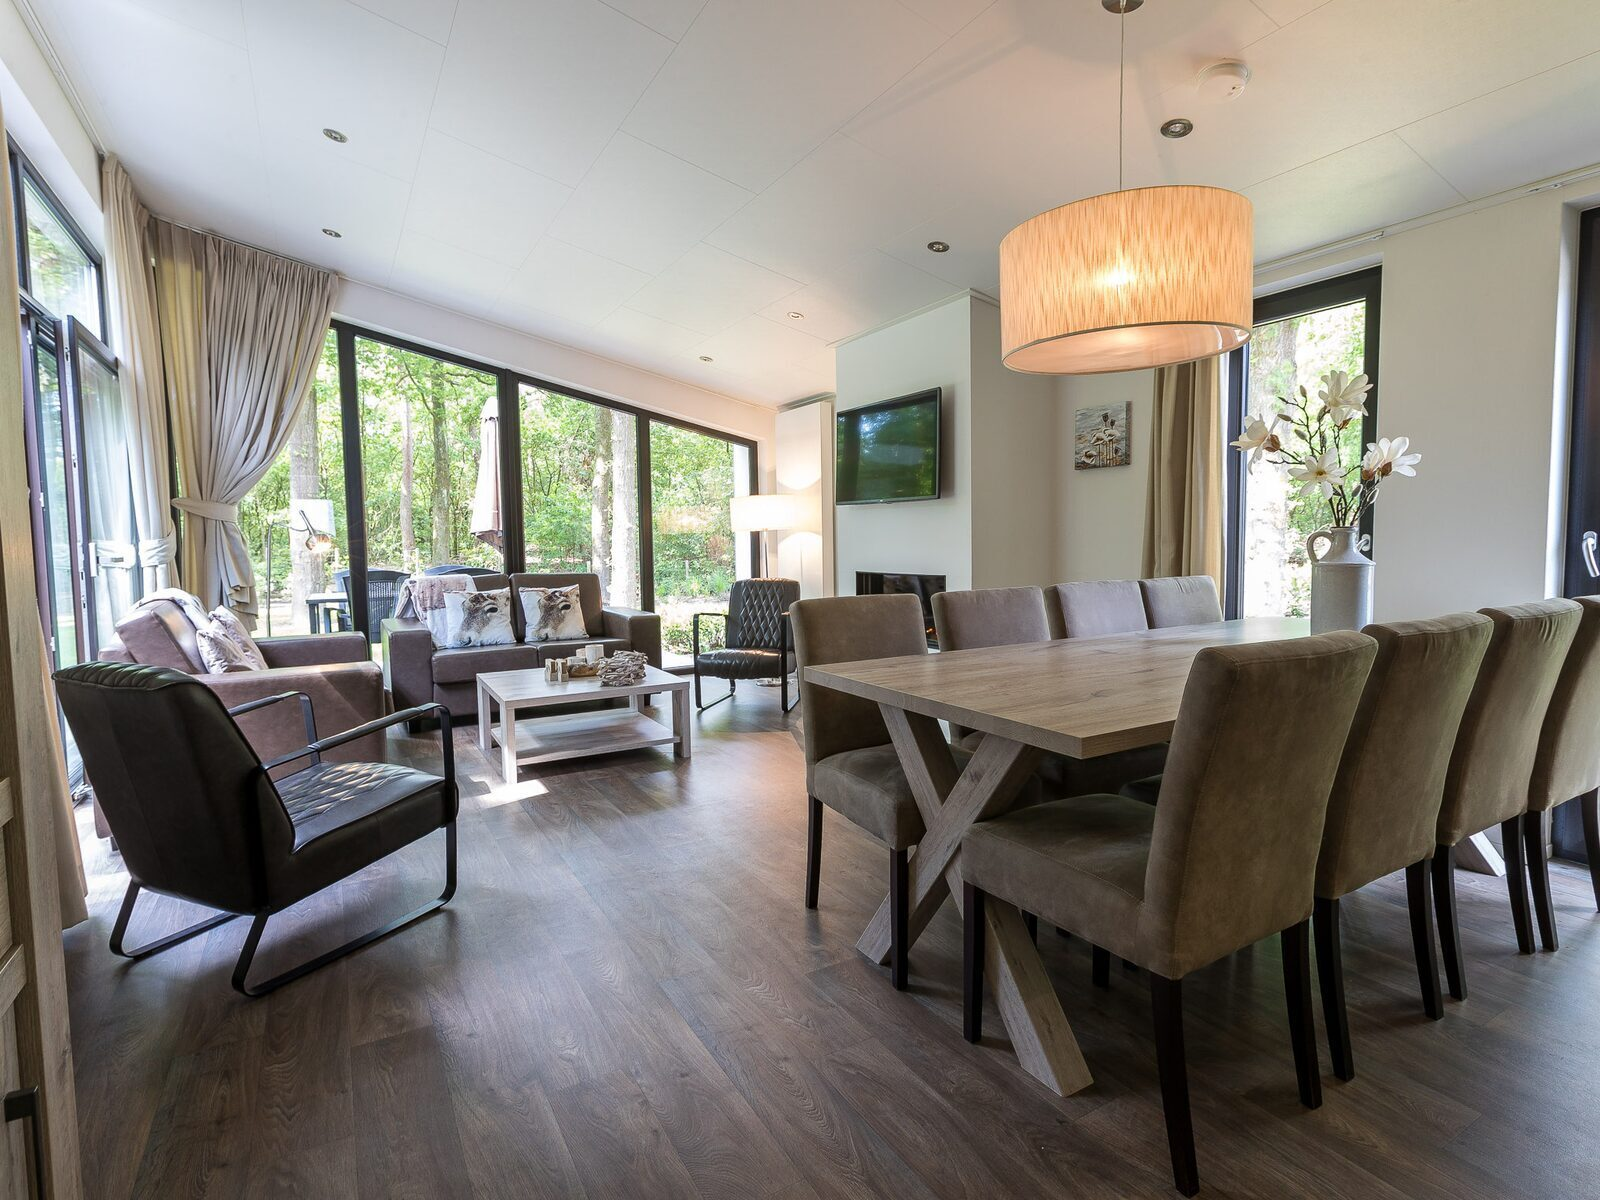 Take a look at our offer of holiday homes at the Hoge Veluwe